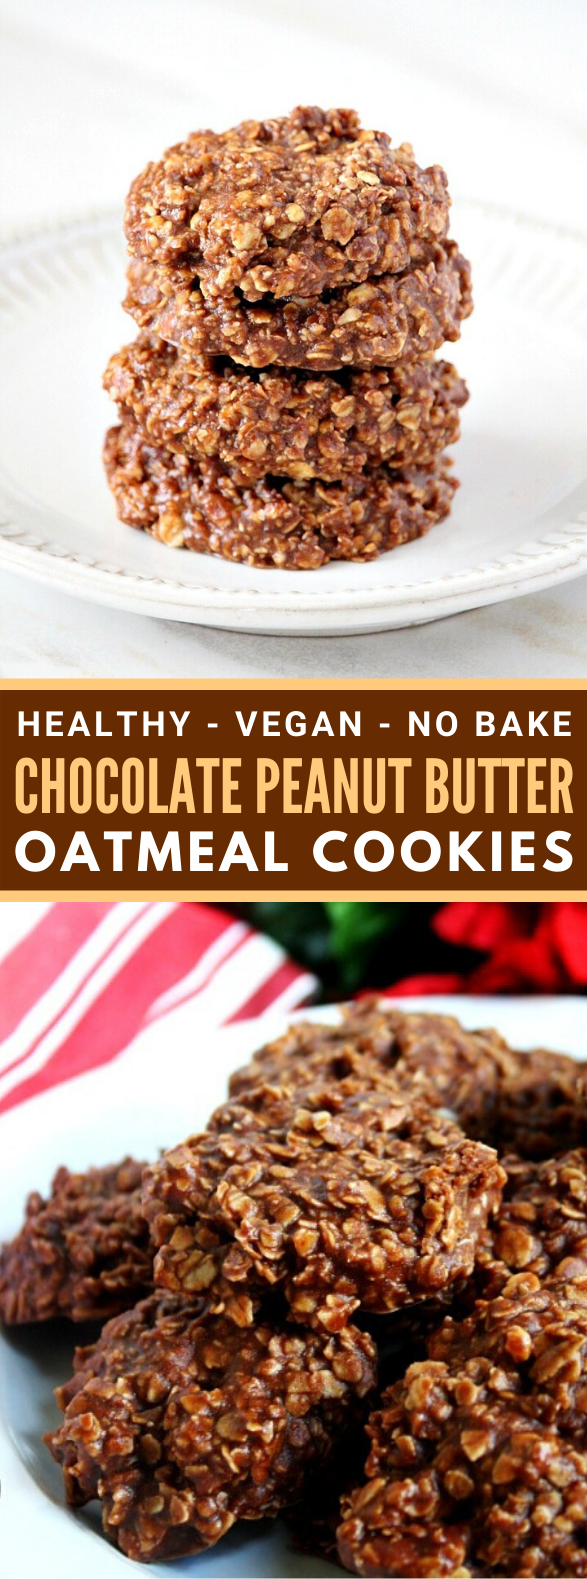 Gluten-Free Vegan Chocolate Peanut Butter Oatmeal No-Bake Cookies #healthy #cleaneating